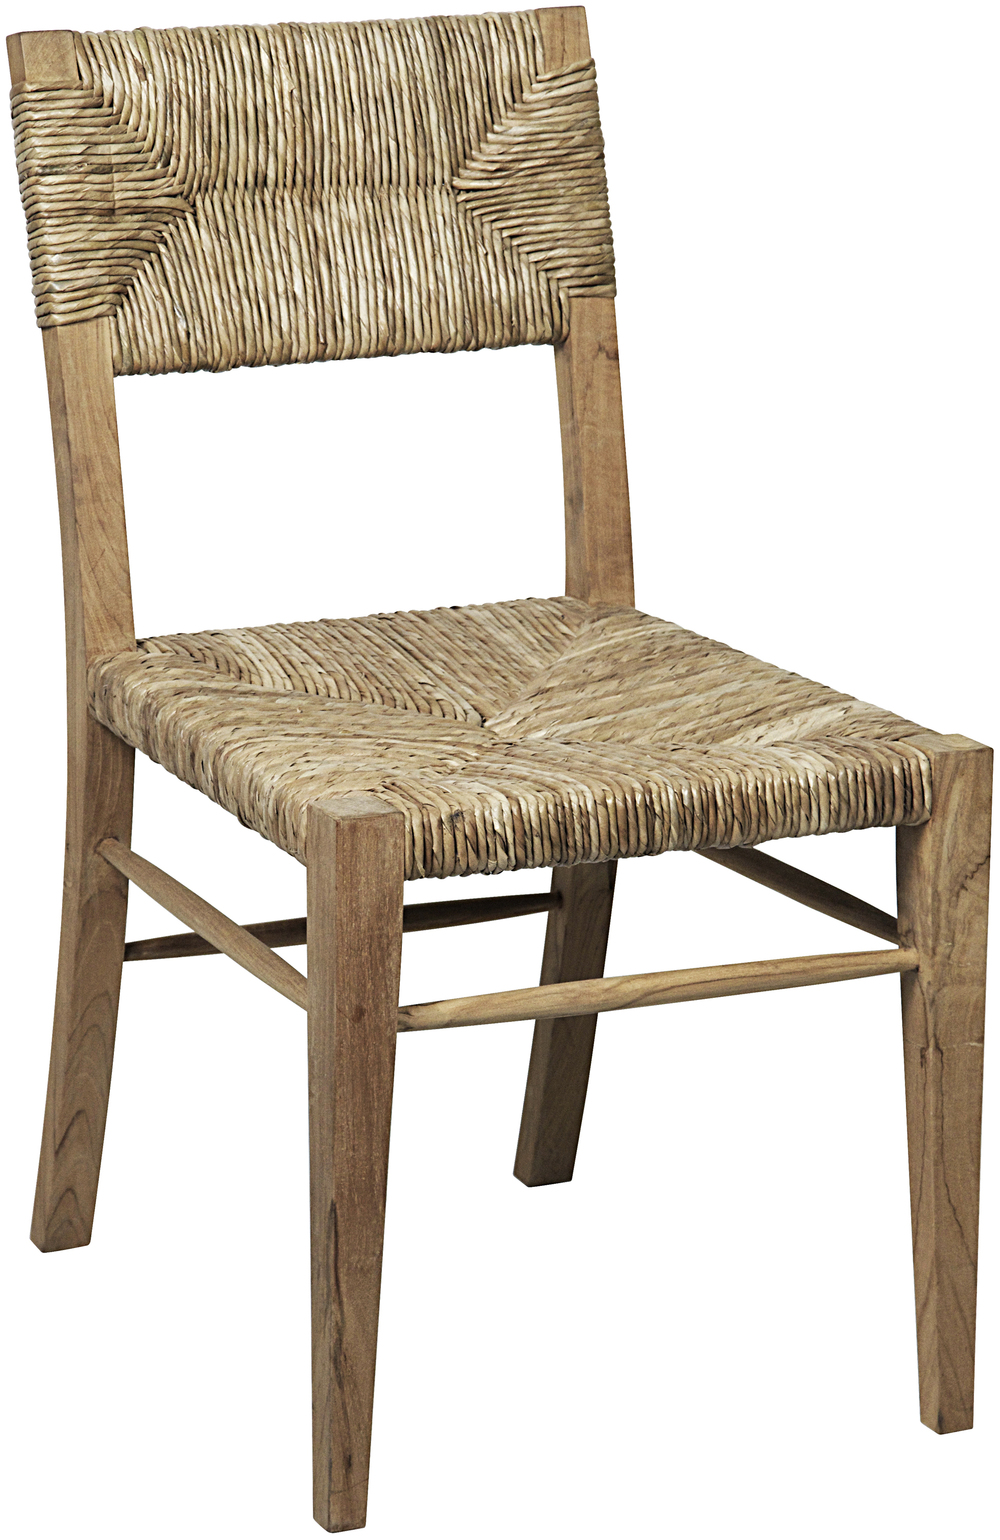 Noir Trading - Faley Dining Chair